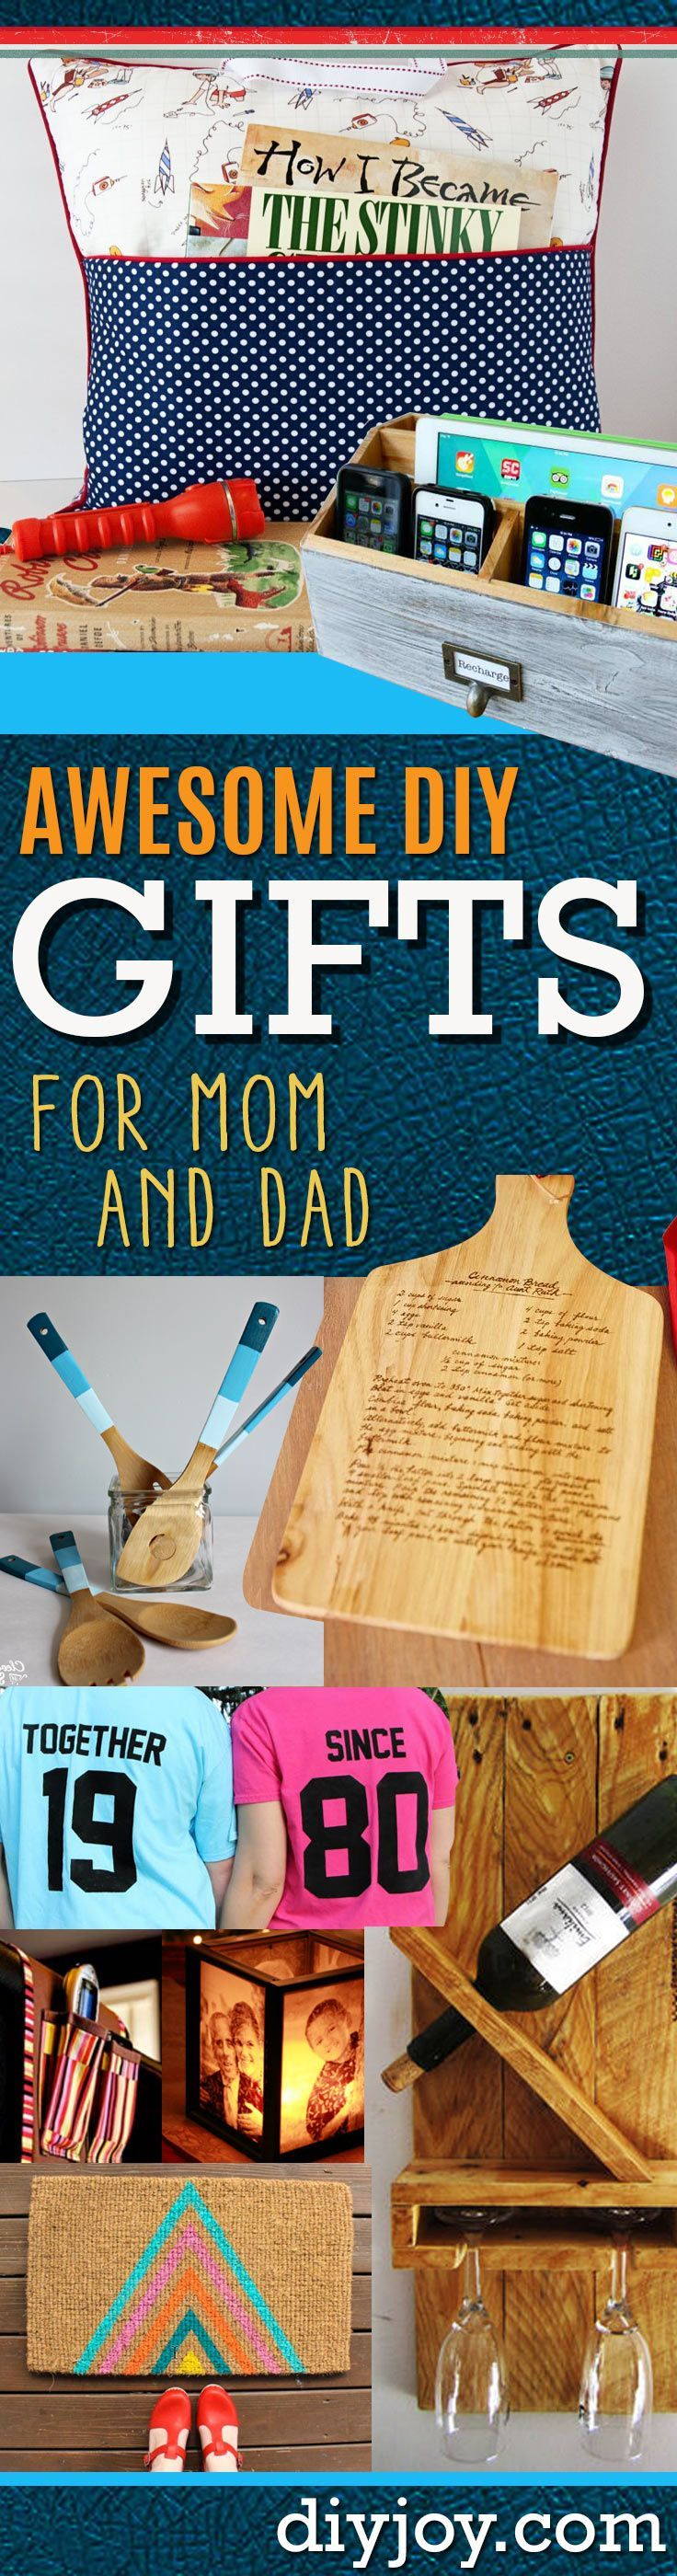 Awesome Diy Gift Ideas Mom And Dad Will Love Homemade Christmas